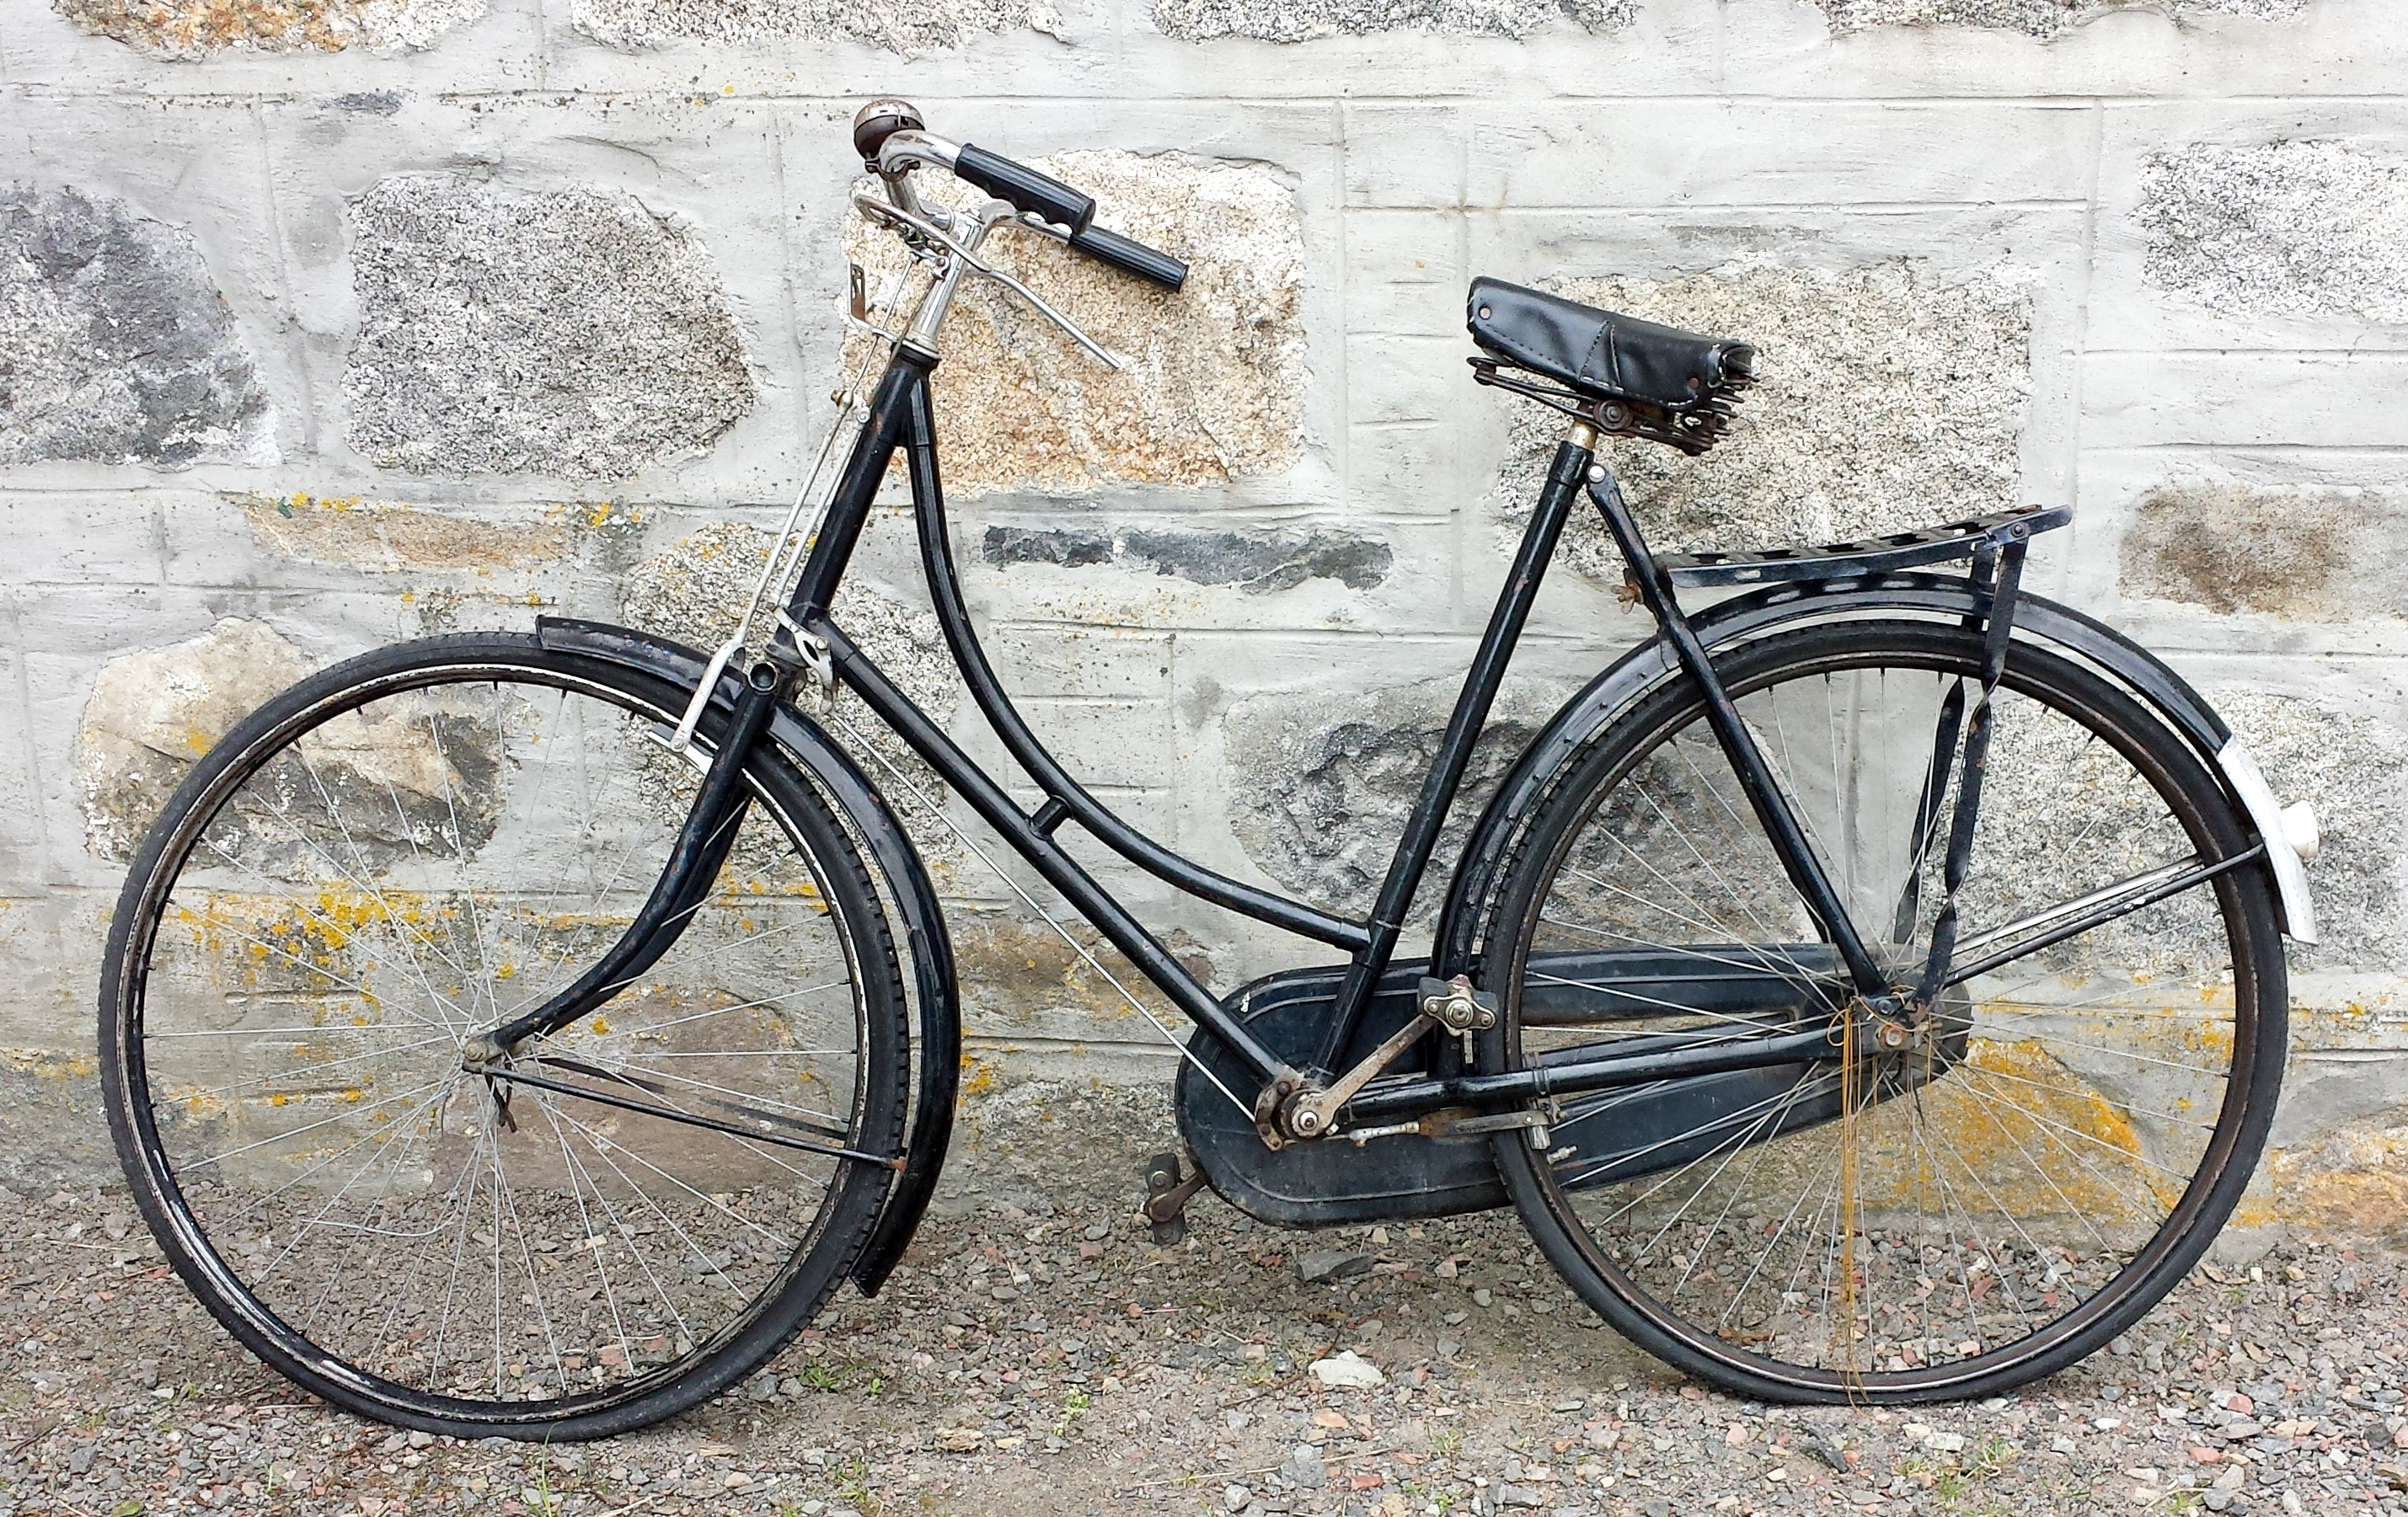 75ed69dc7cb Raleigh Bicycle Company - Wikiwand